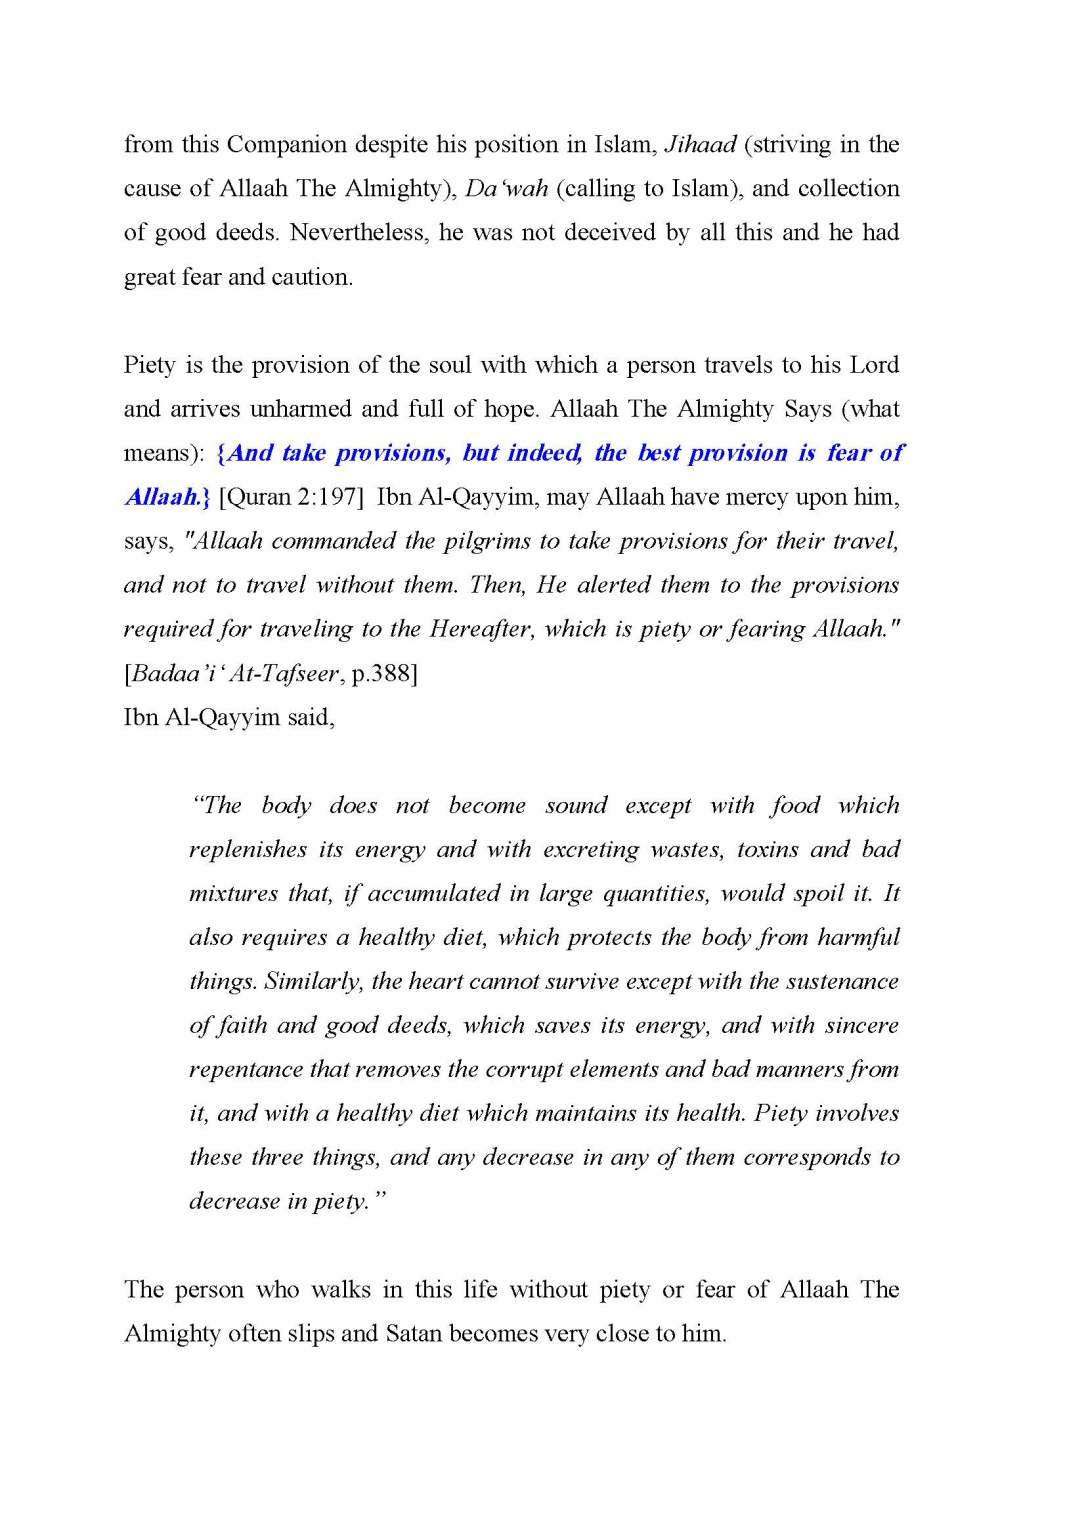 Benefits_and_Secrets_of_Fasting_Page_05